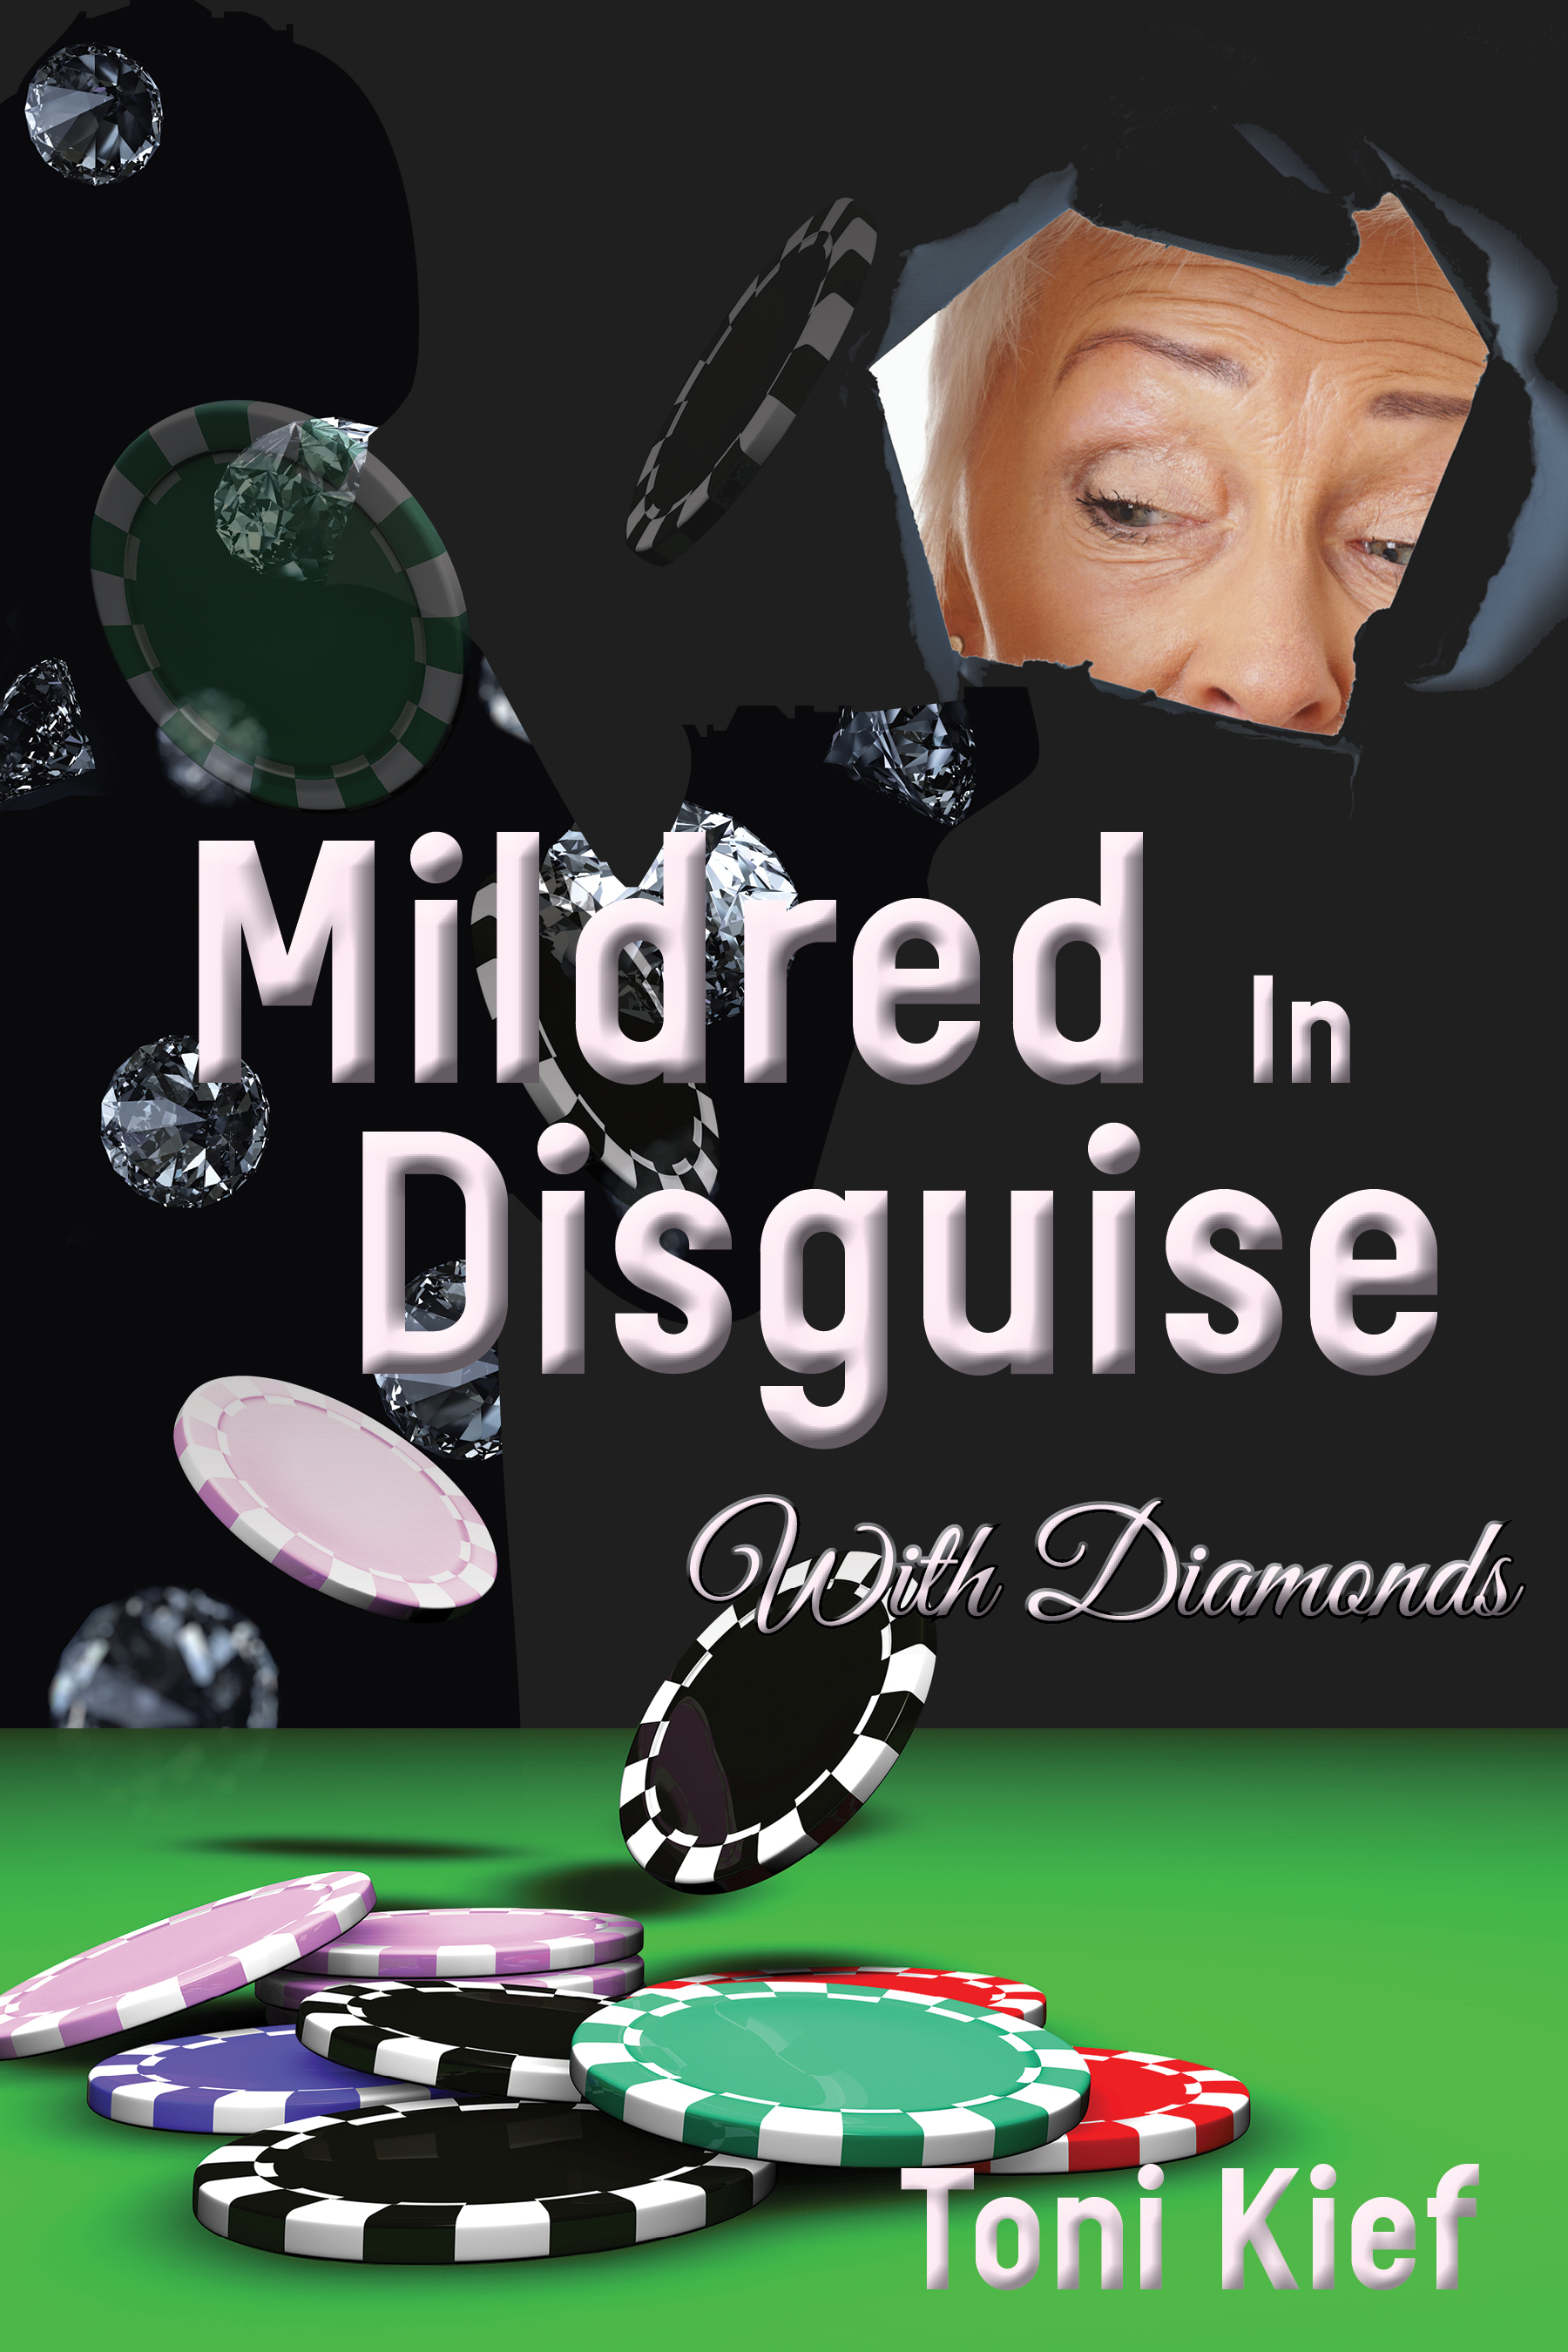 Mildred in Disguise with Diamonds  Available in  paperback  and on  Kindle .  Cover artwork and interior layout design provided by Cover&Layout